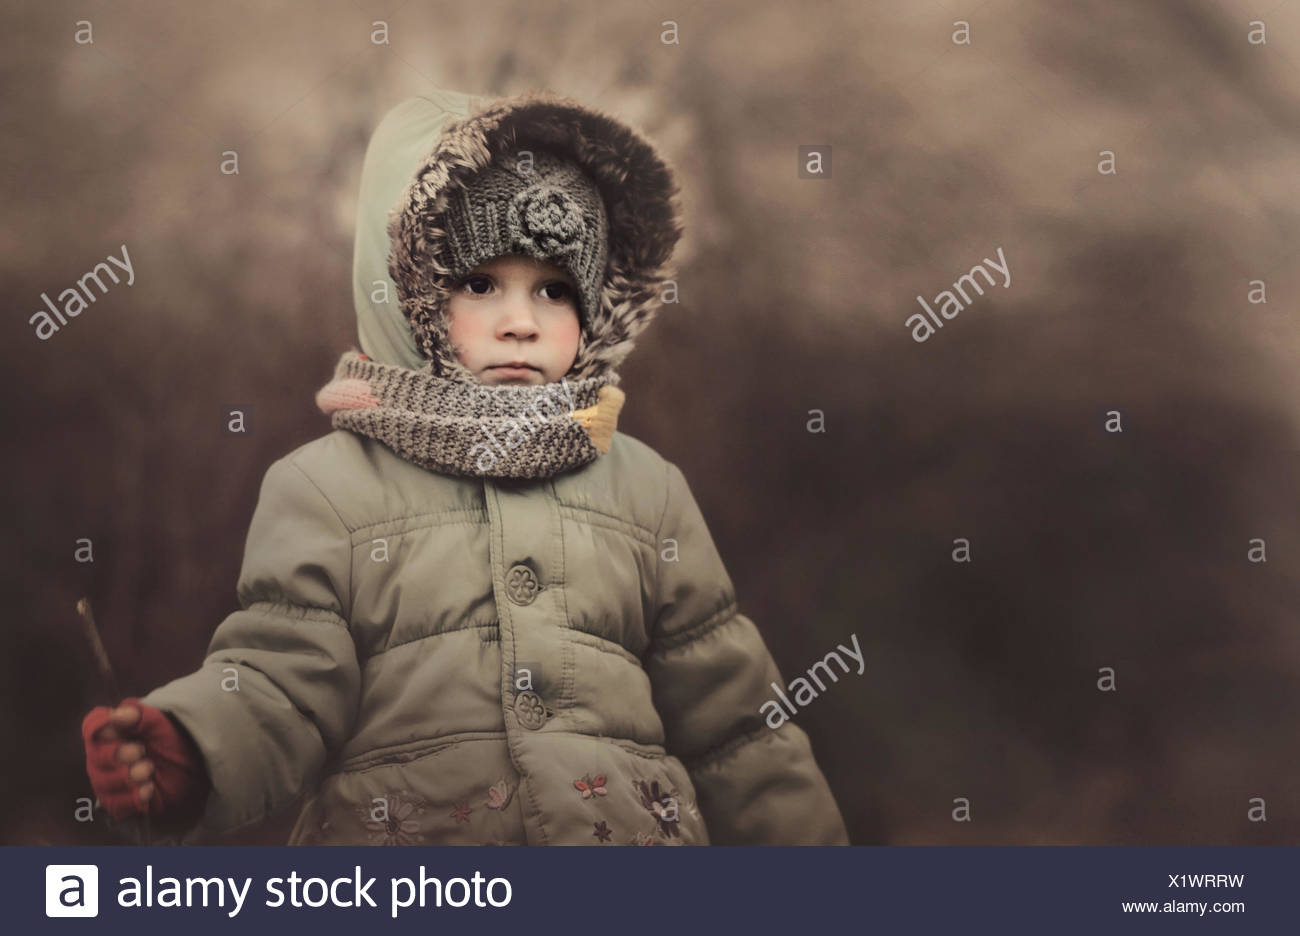 Poland, Portrait of girl wearing warm clothes - Stock Image